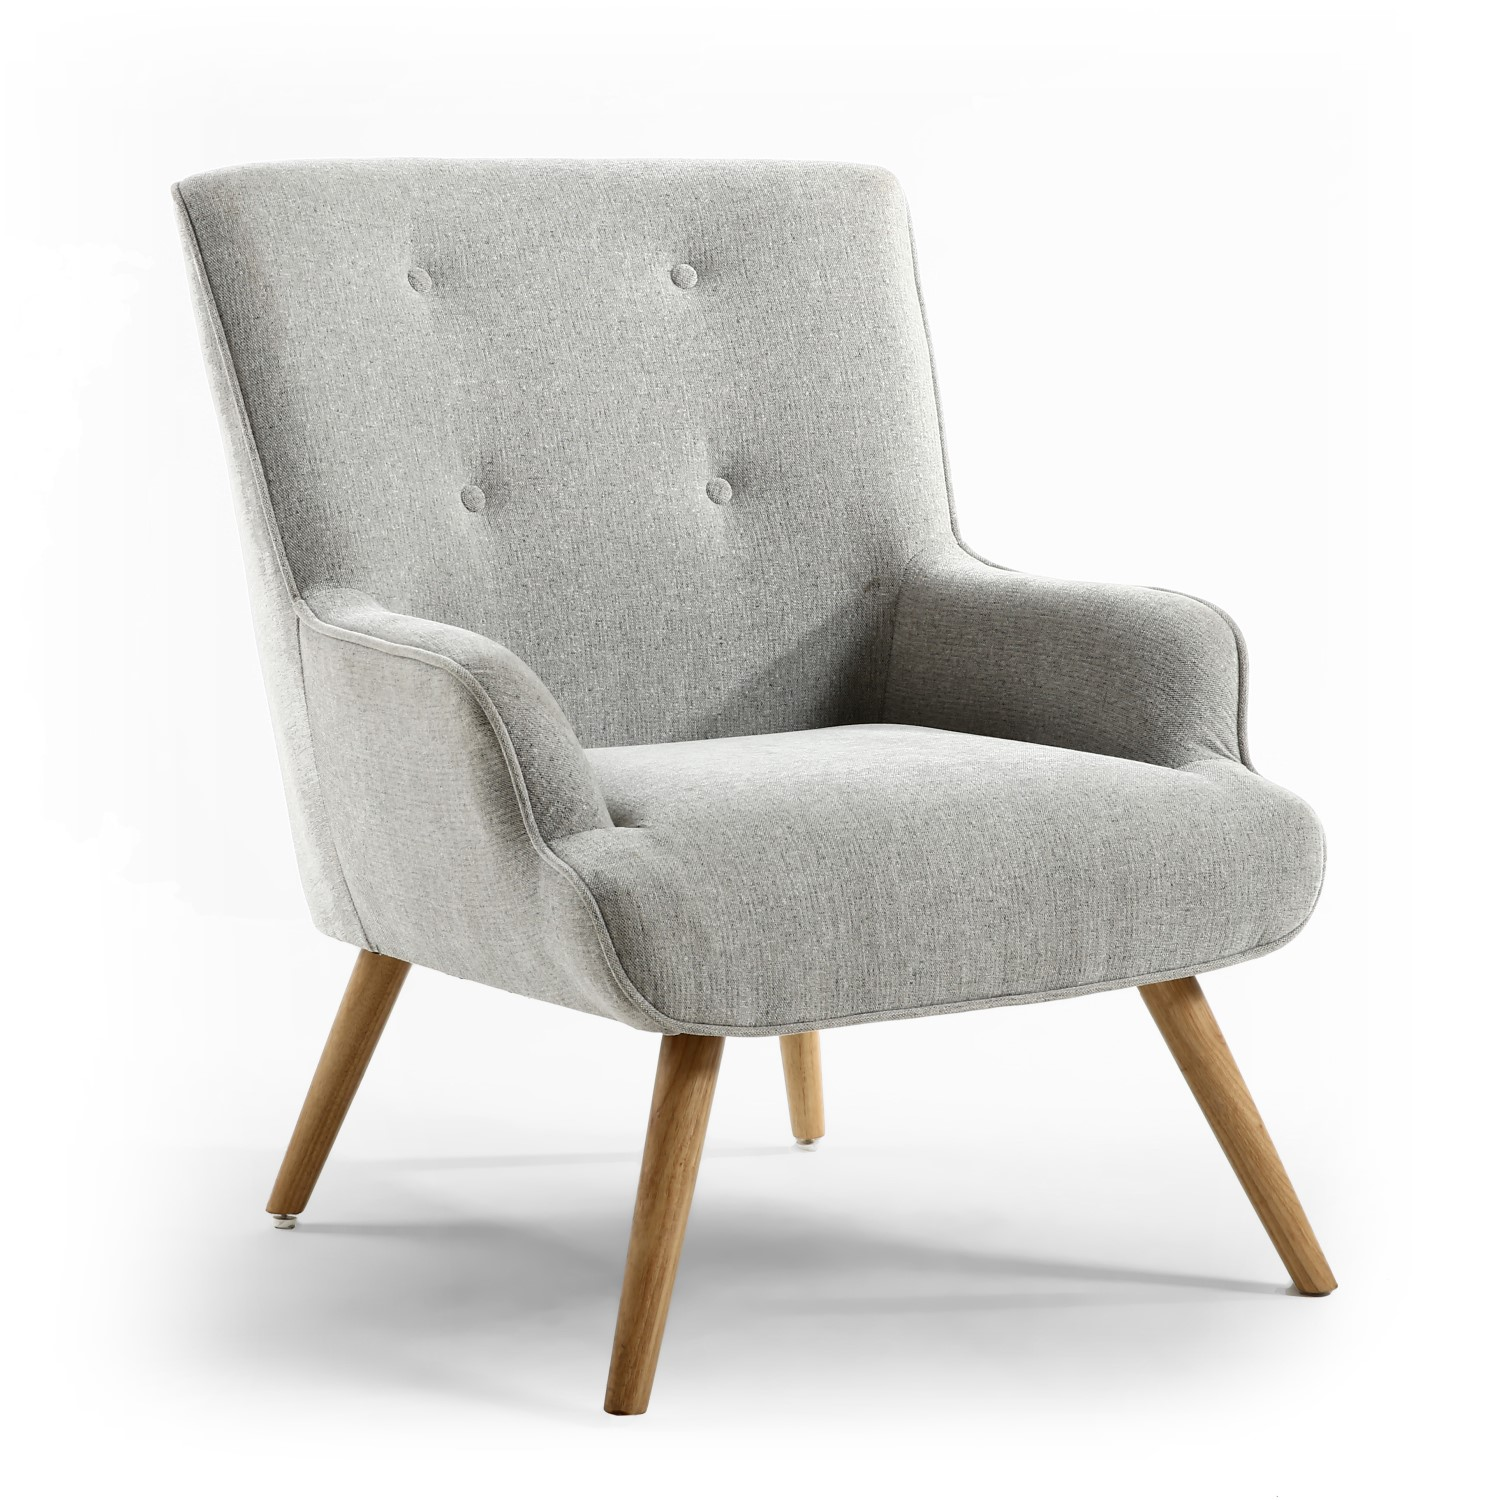 Upholstered Armchair in Silver Grey Fabric